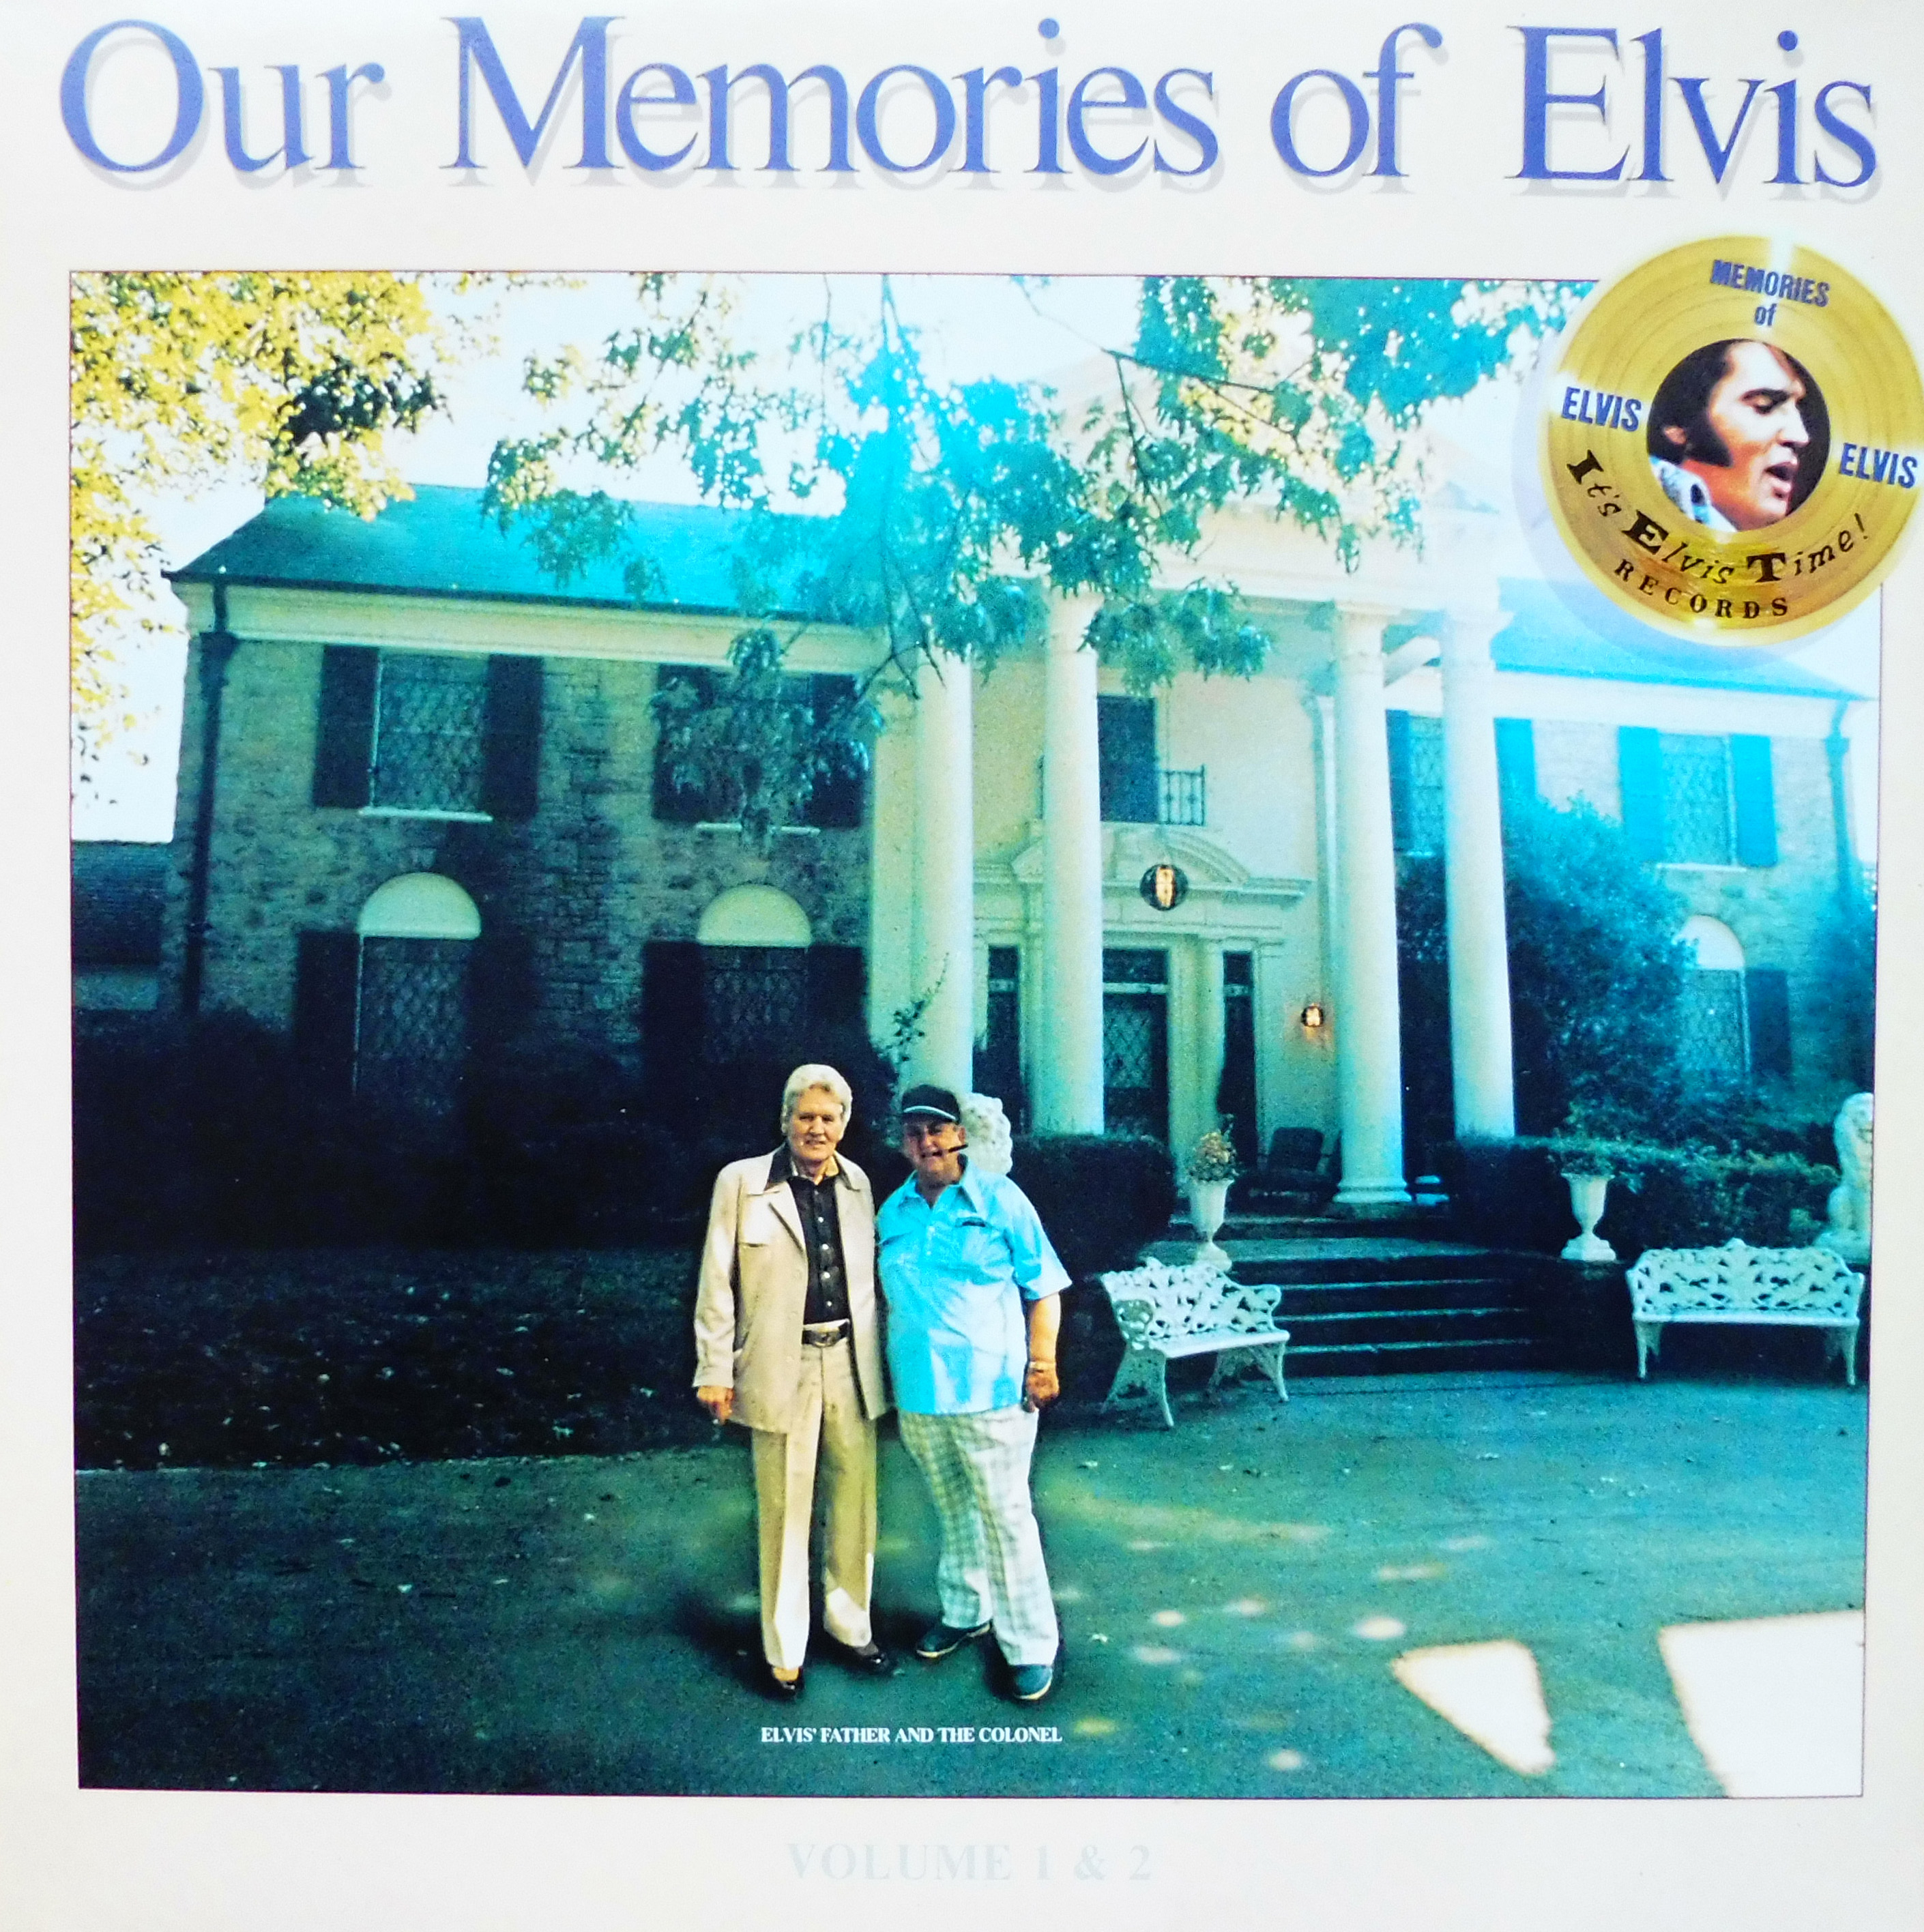 OUR MEMORIES OF ELVIS - Volume 1 & 2 Omoevol1und2nlfrontsxjcj